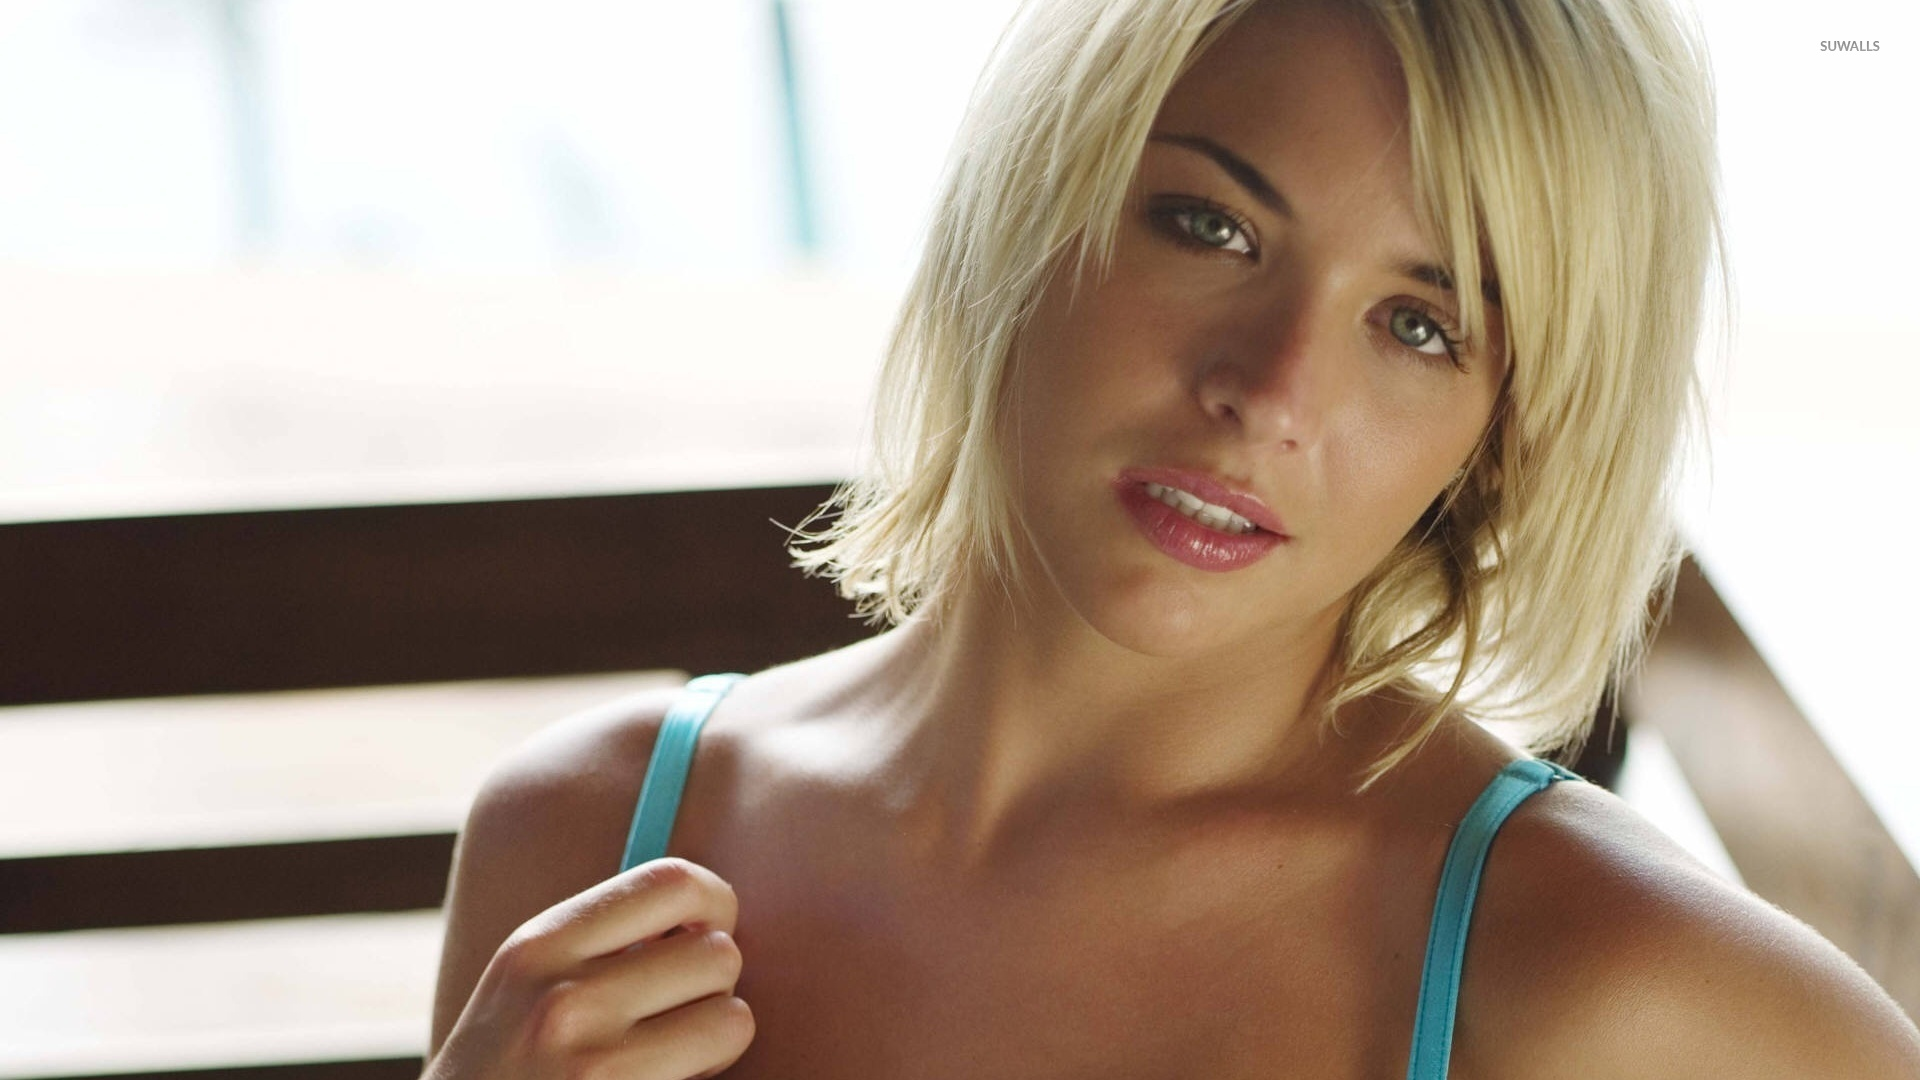 Gemma Atkinson [11] wallpaper - Celebrity wallpapers - #4270